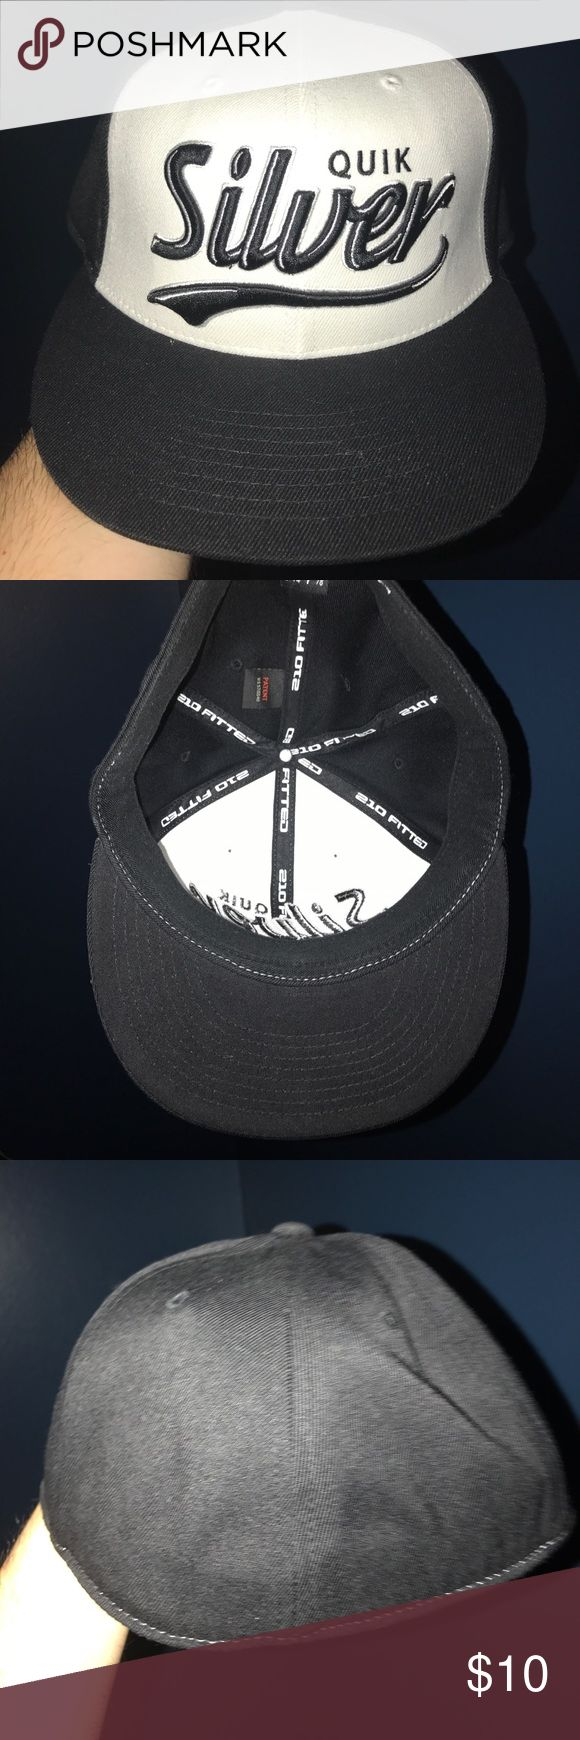 Quiksilver hat one size 1sz, no tags. Quiksilver hat one size 1sz, no tags.  Doesn't appear to be worn.  Will fit a medium to large head.  Not a flex cap but no size listed. Accessories Hats